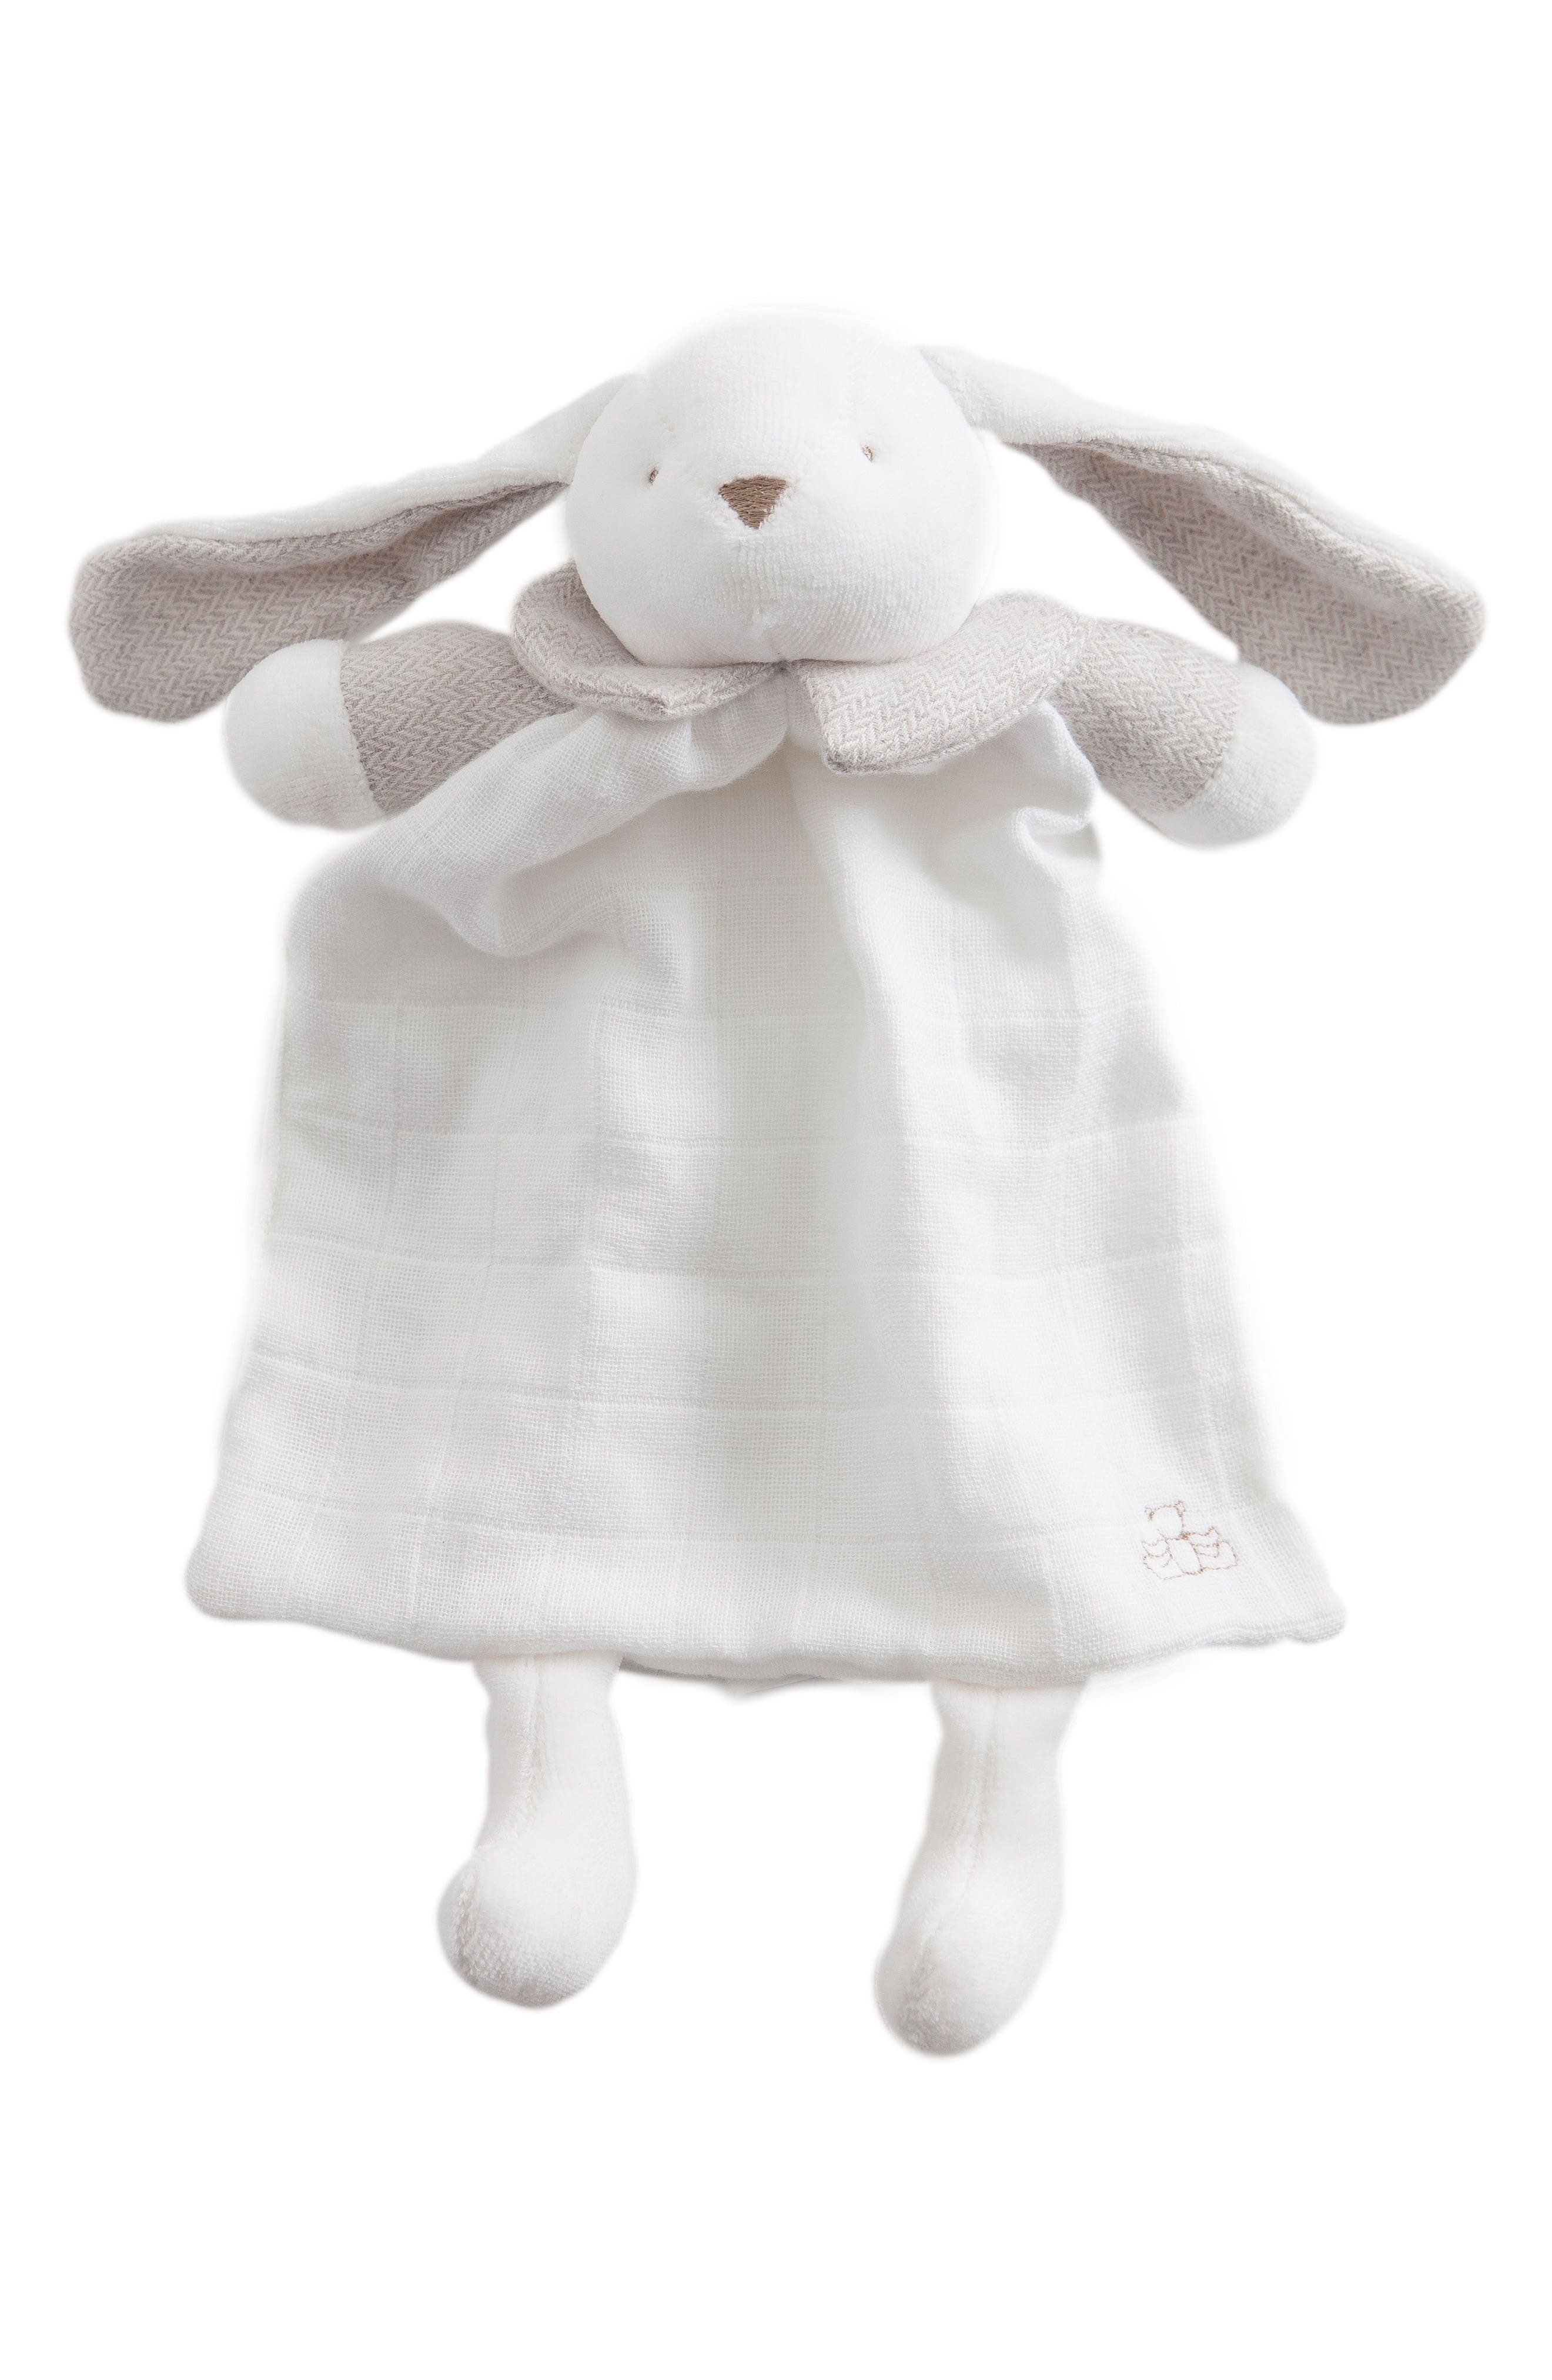 Main Image - Pamplemousse Peluches Rabbit Lovey Toy